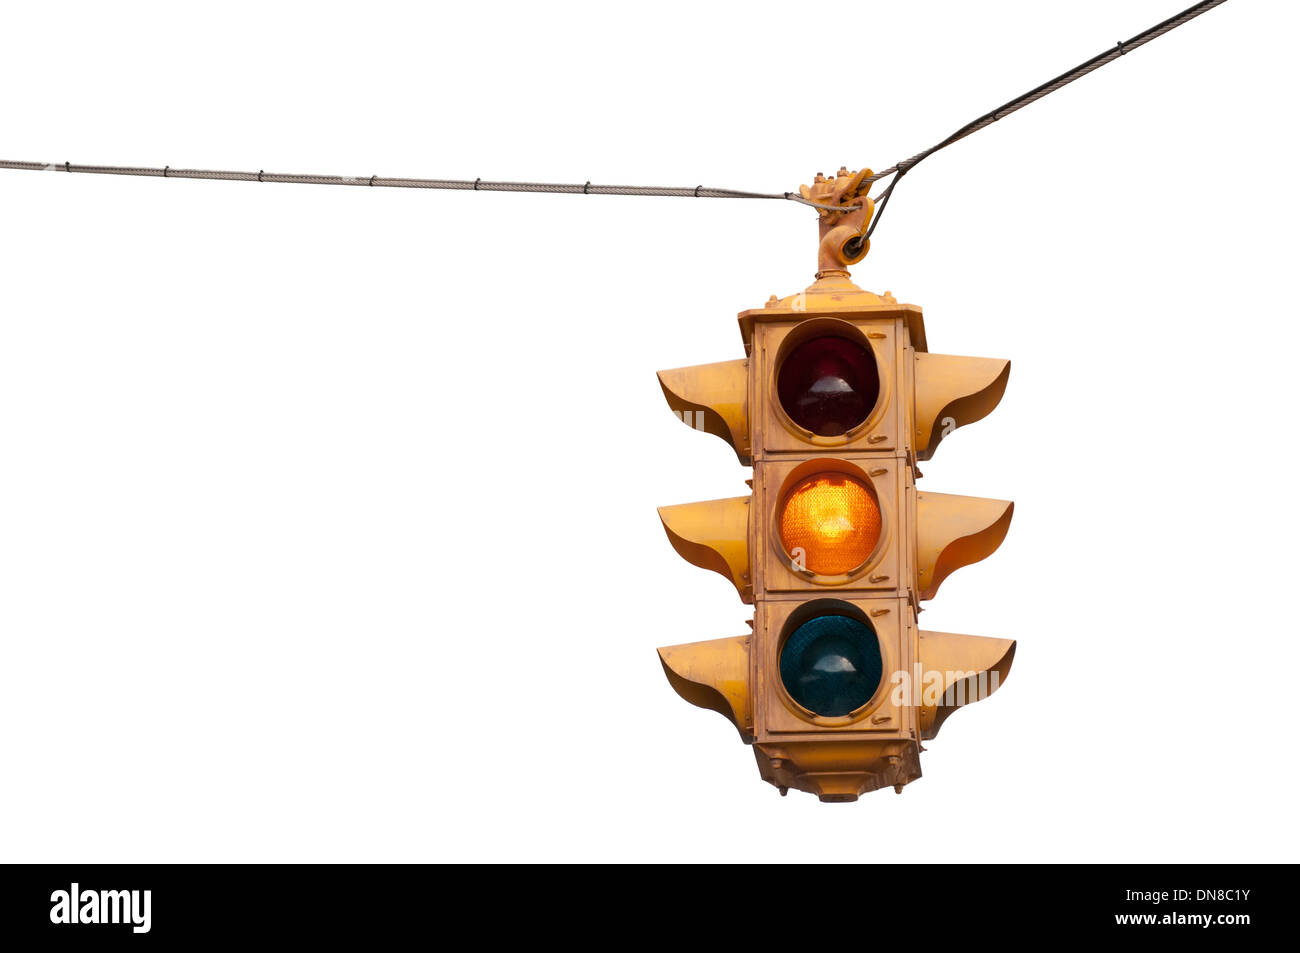 Vintage Traffic Light Flashing Yellow Caution Isolated On A White Background